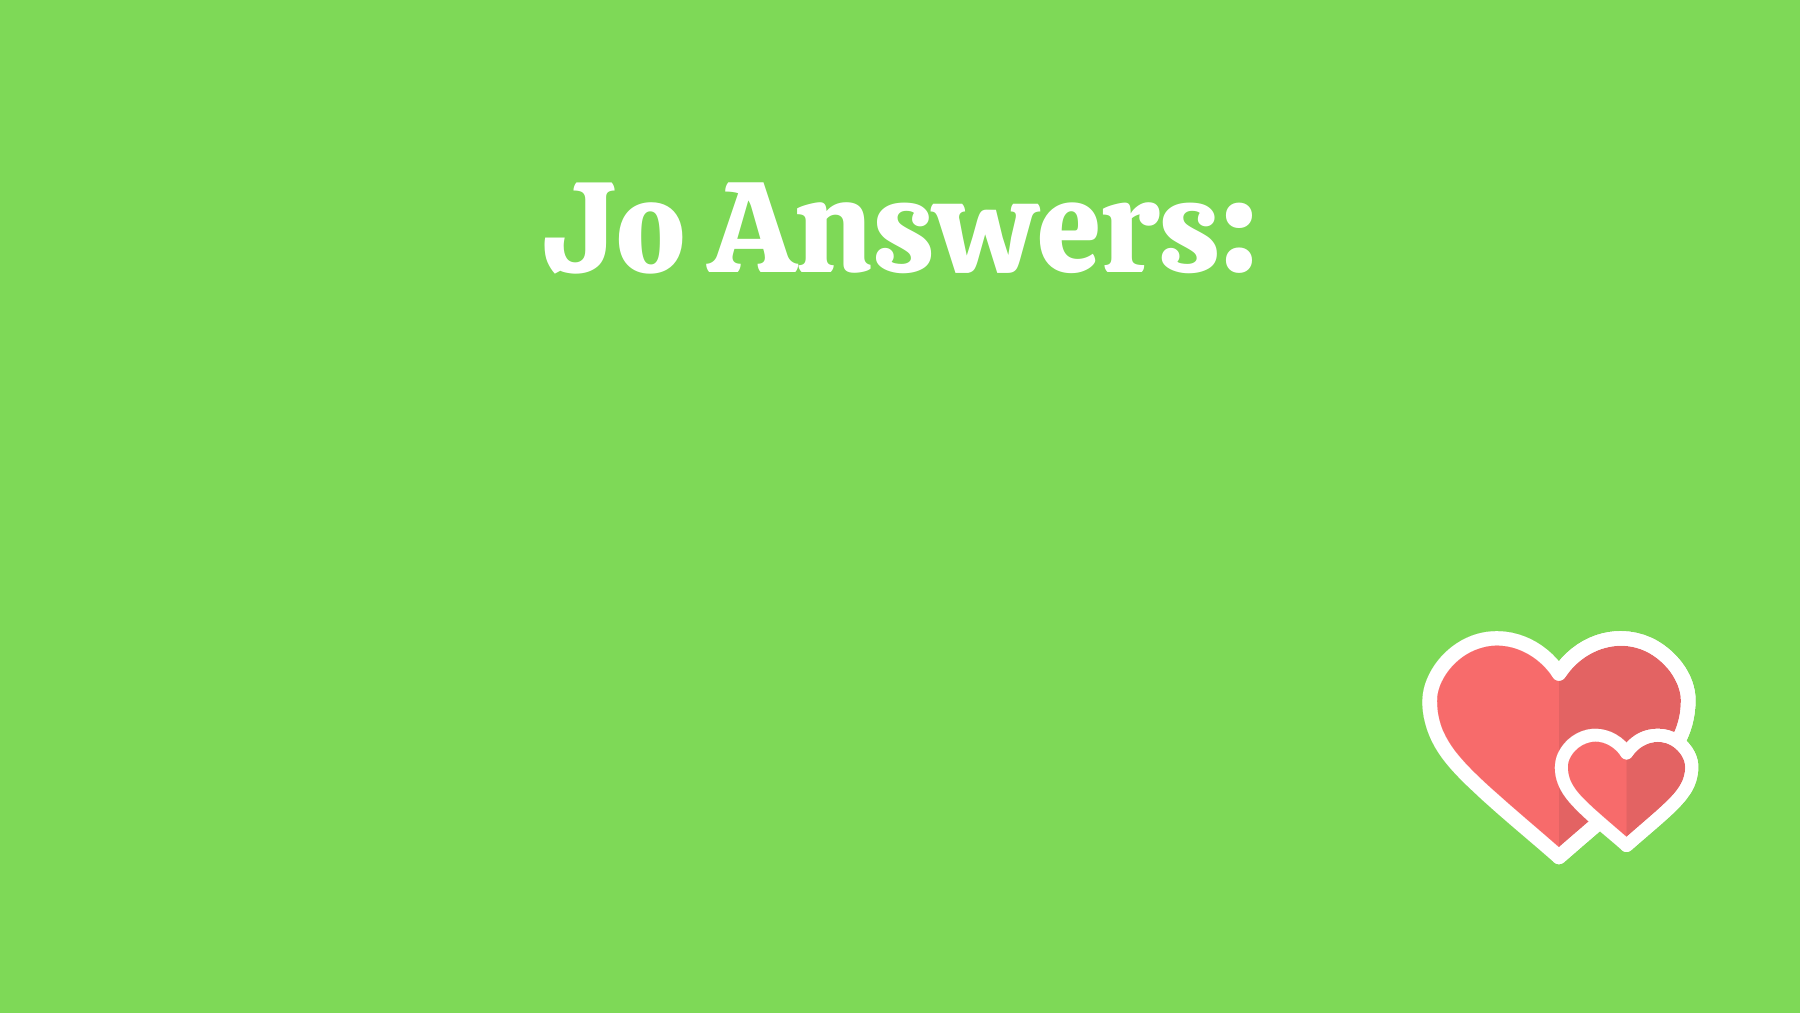 Green background with white text saying Jo Answers: